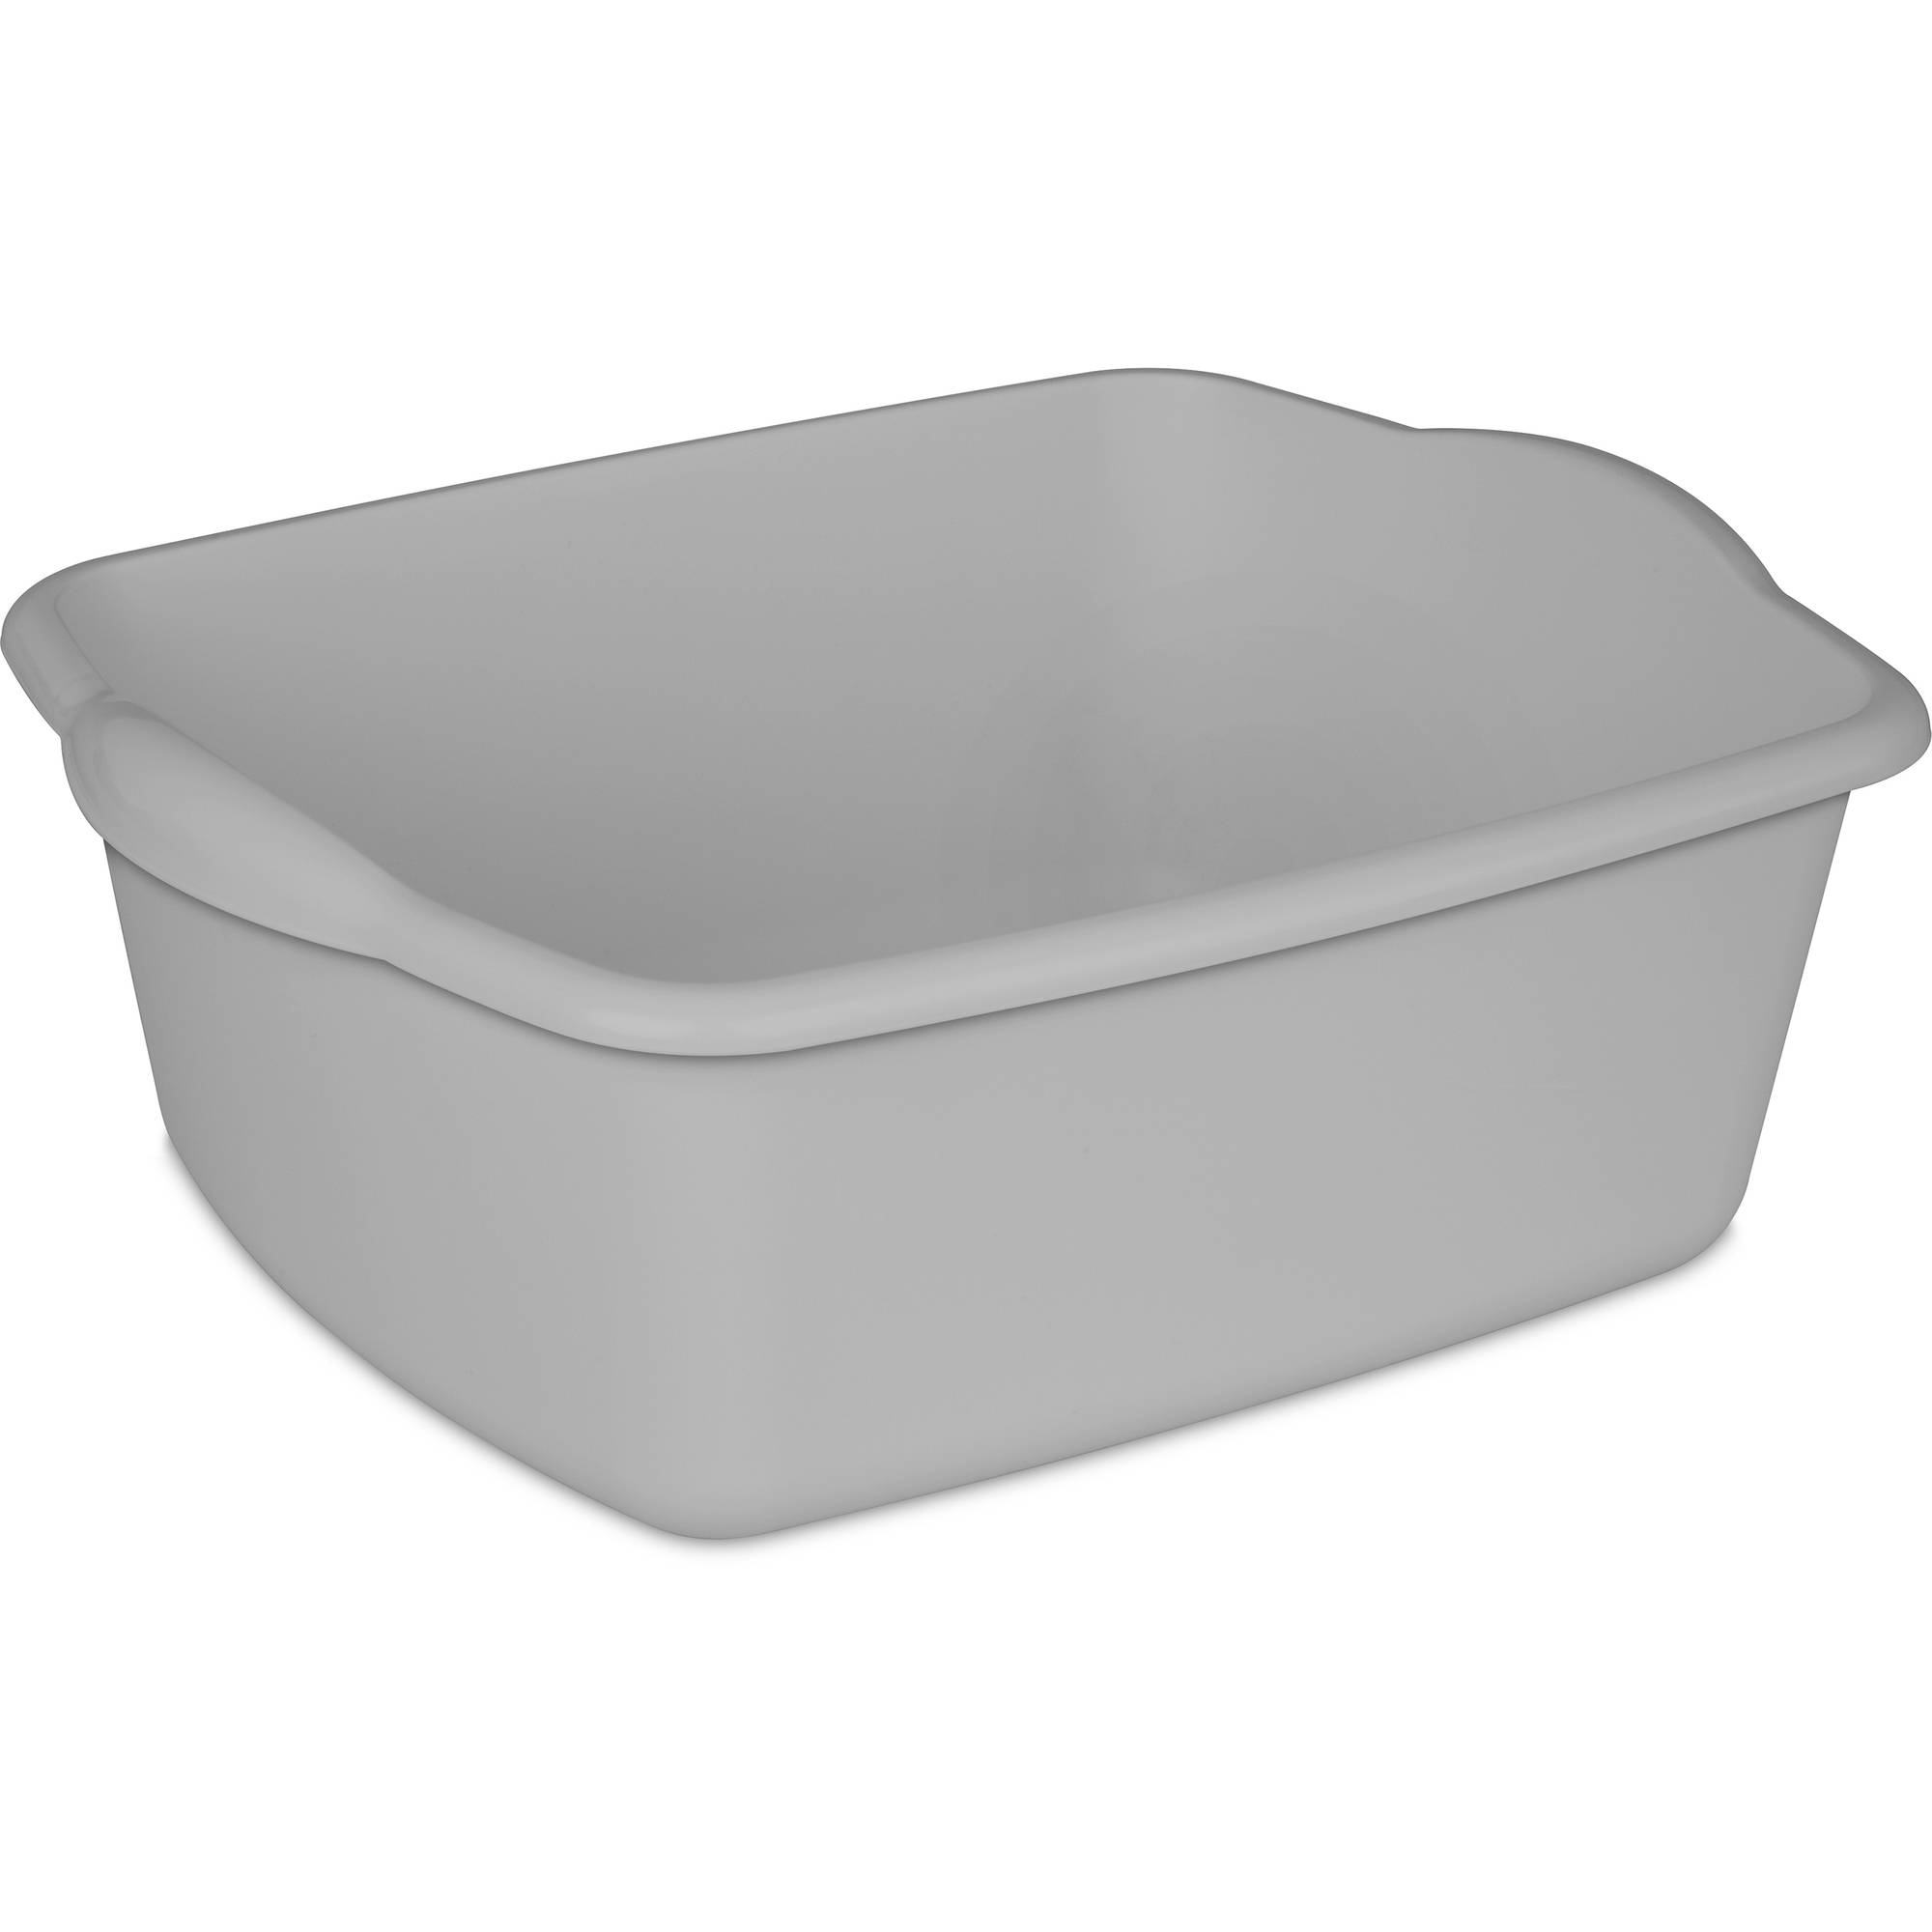 Sterilite 12 Quart Dishpan Cement Available In Case Of 6